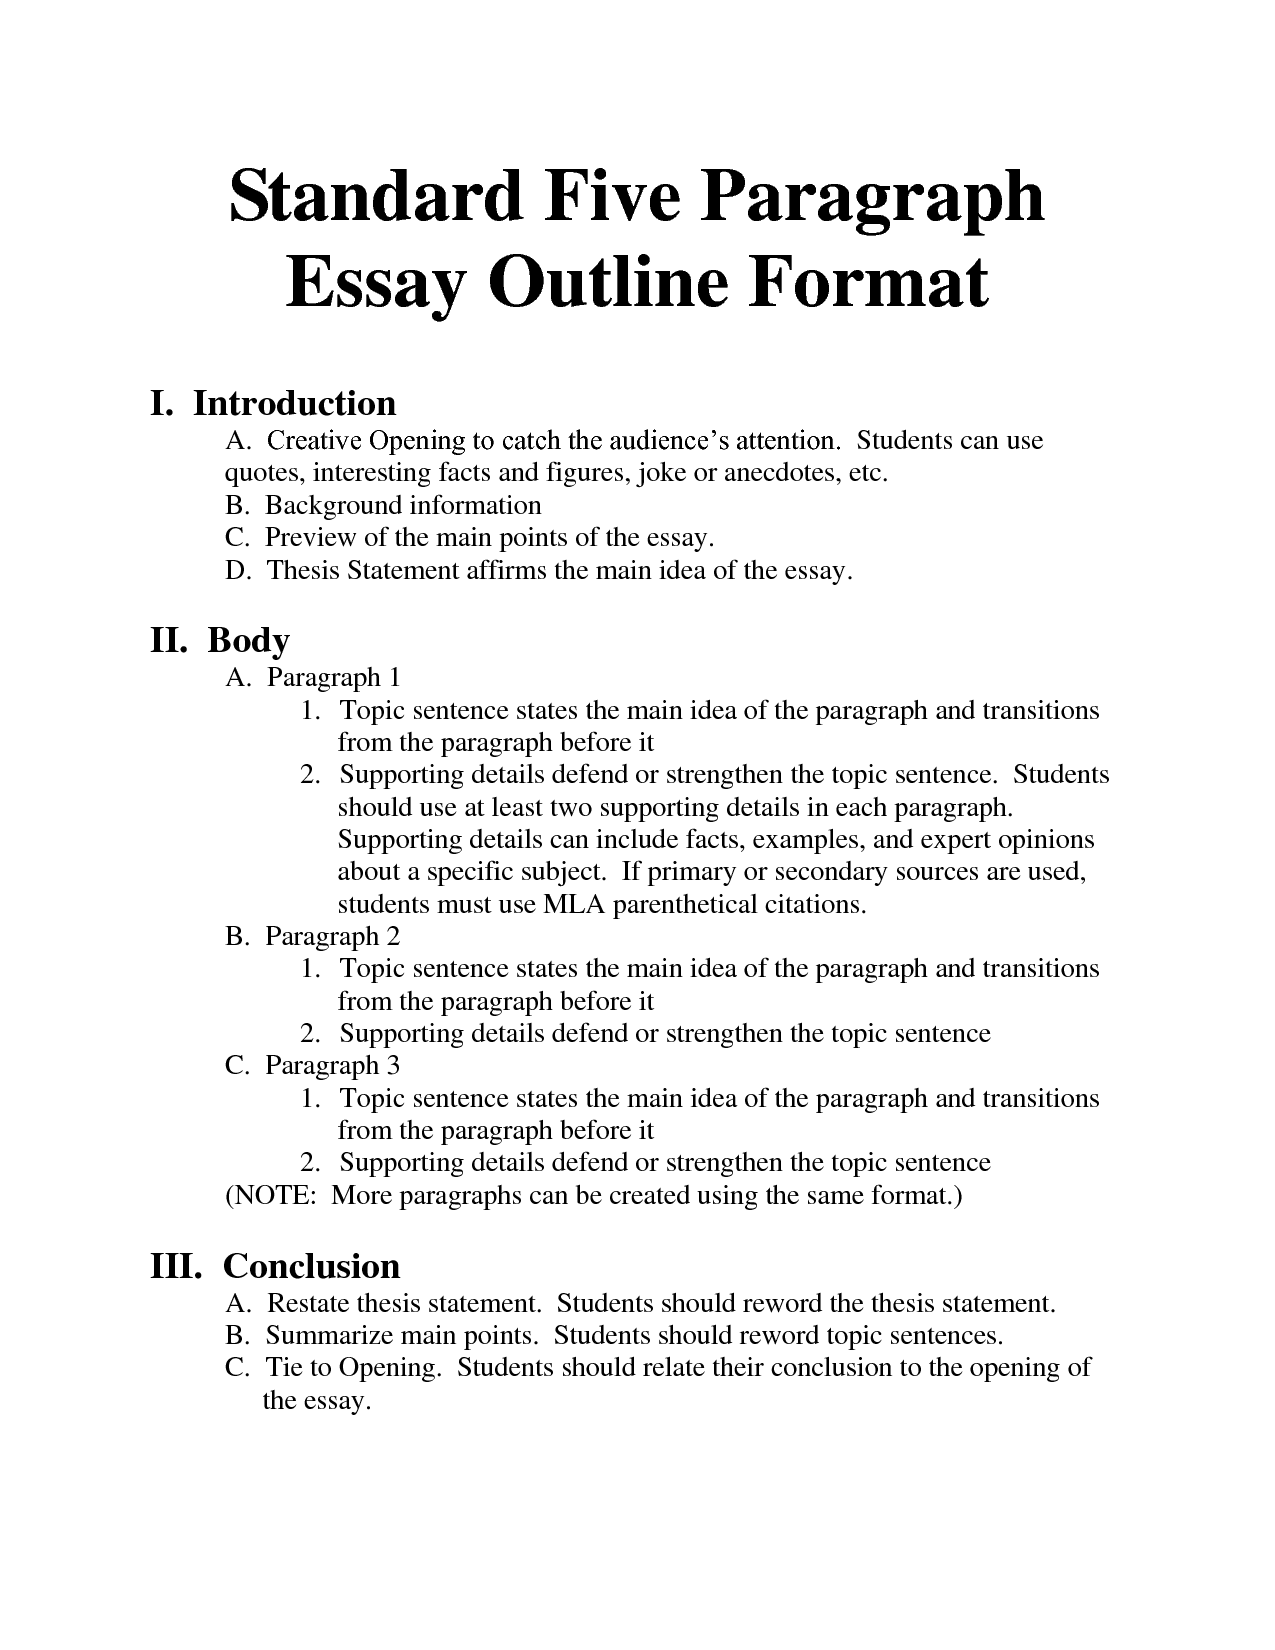 Writing Outlines For Essays Felixflips dcfbfdabfabcdb Writing Outlines For Essays